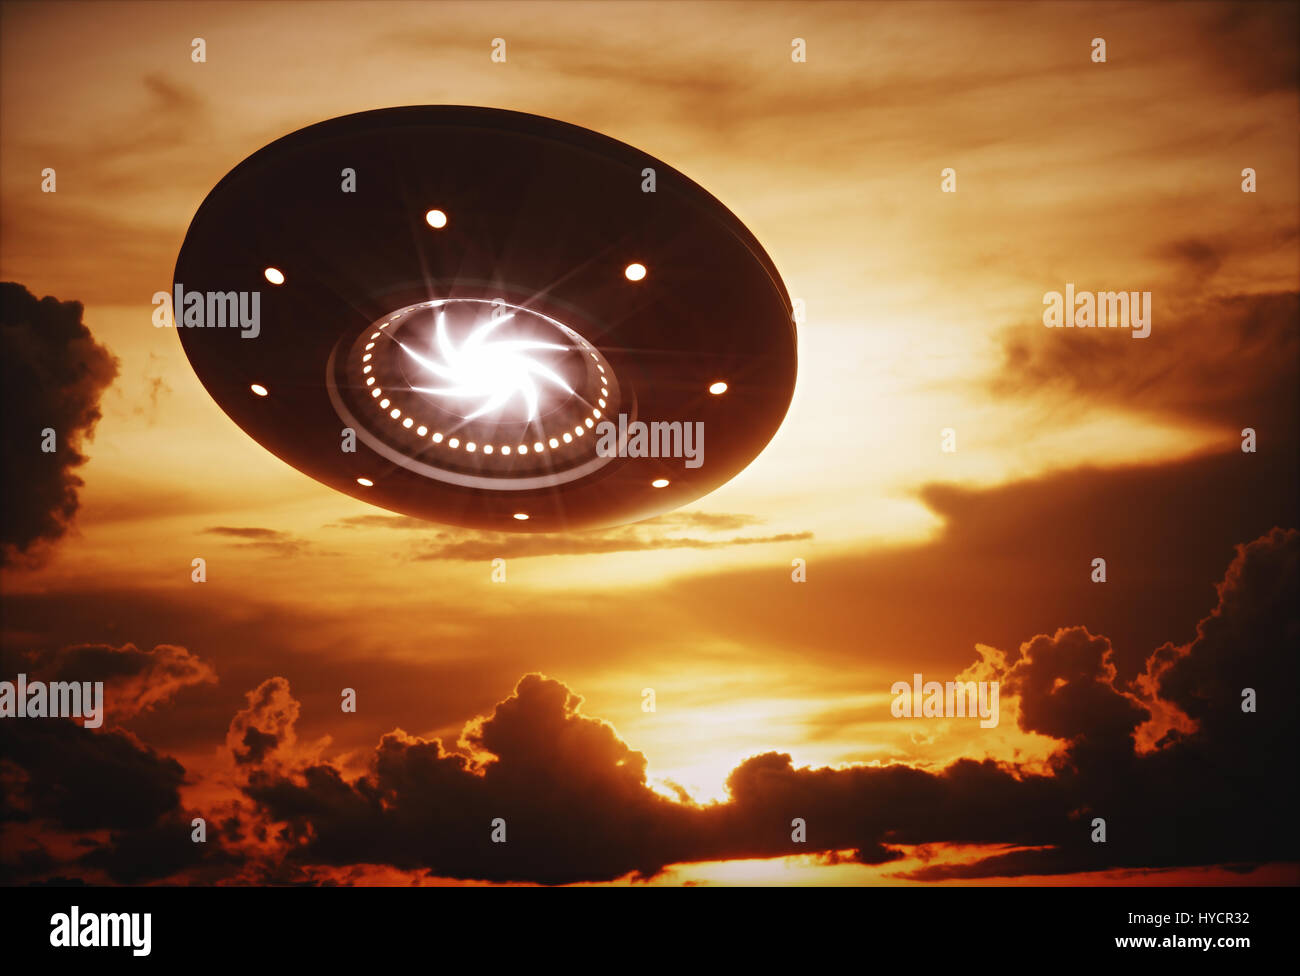 3D illustration with photography. Alien spaceship under the sunset. Stock Photo